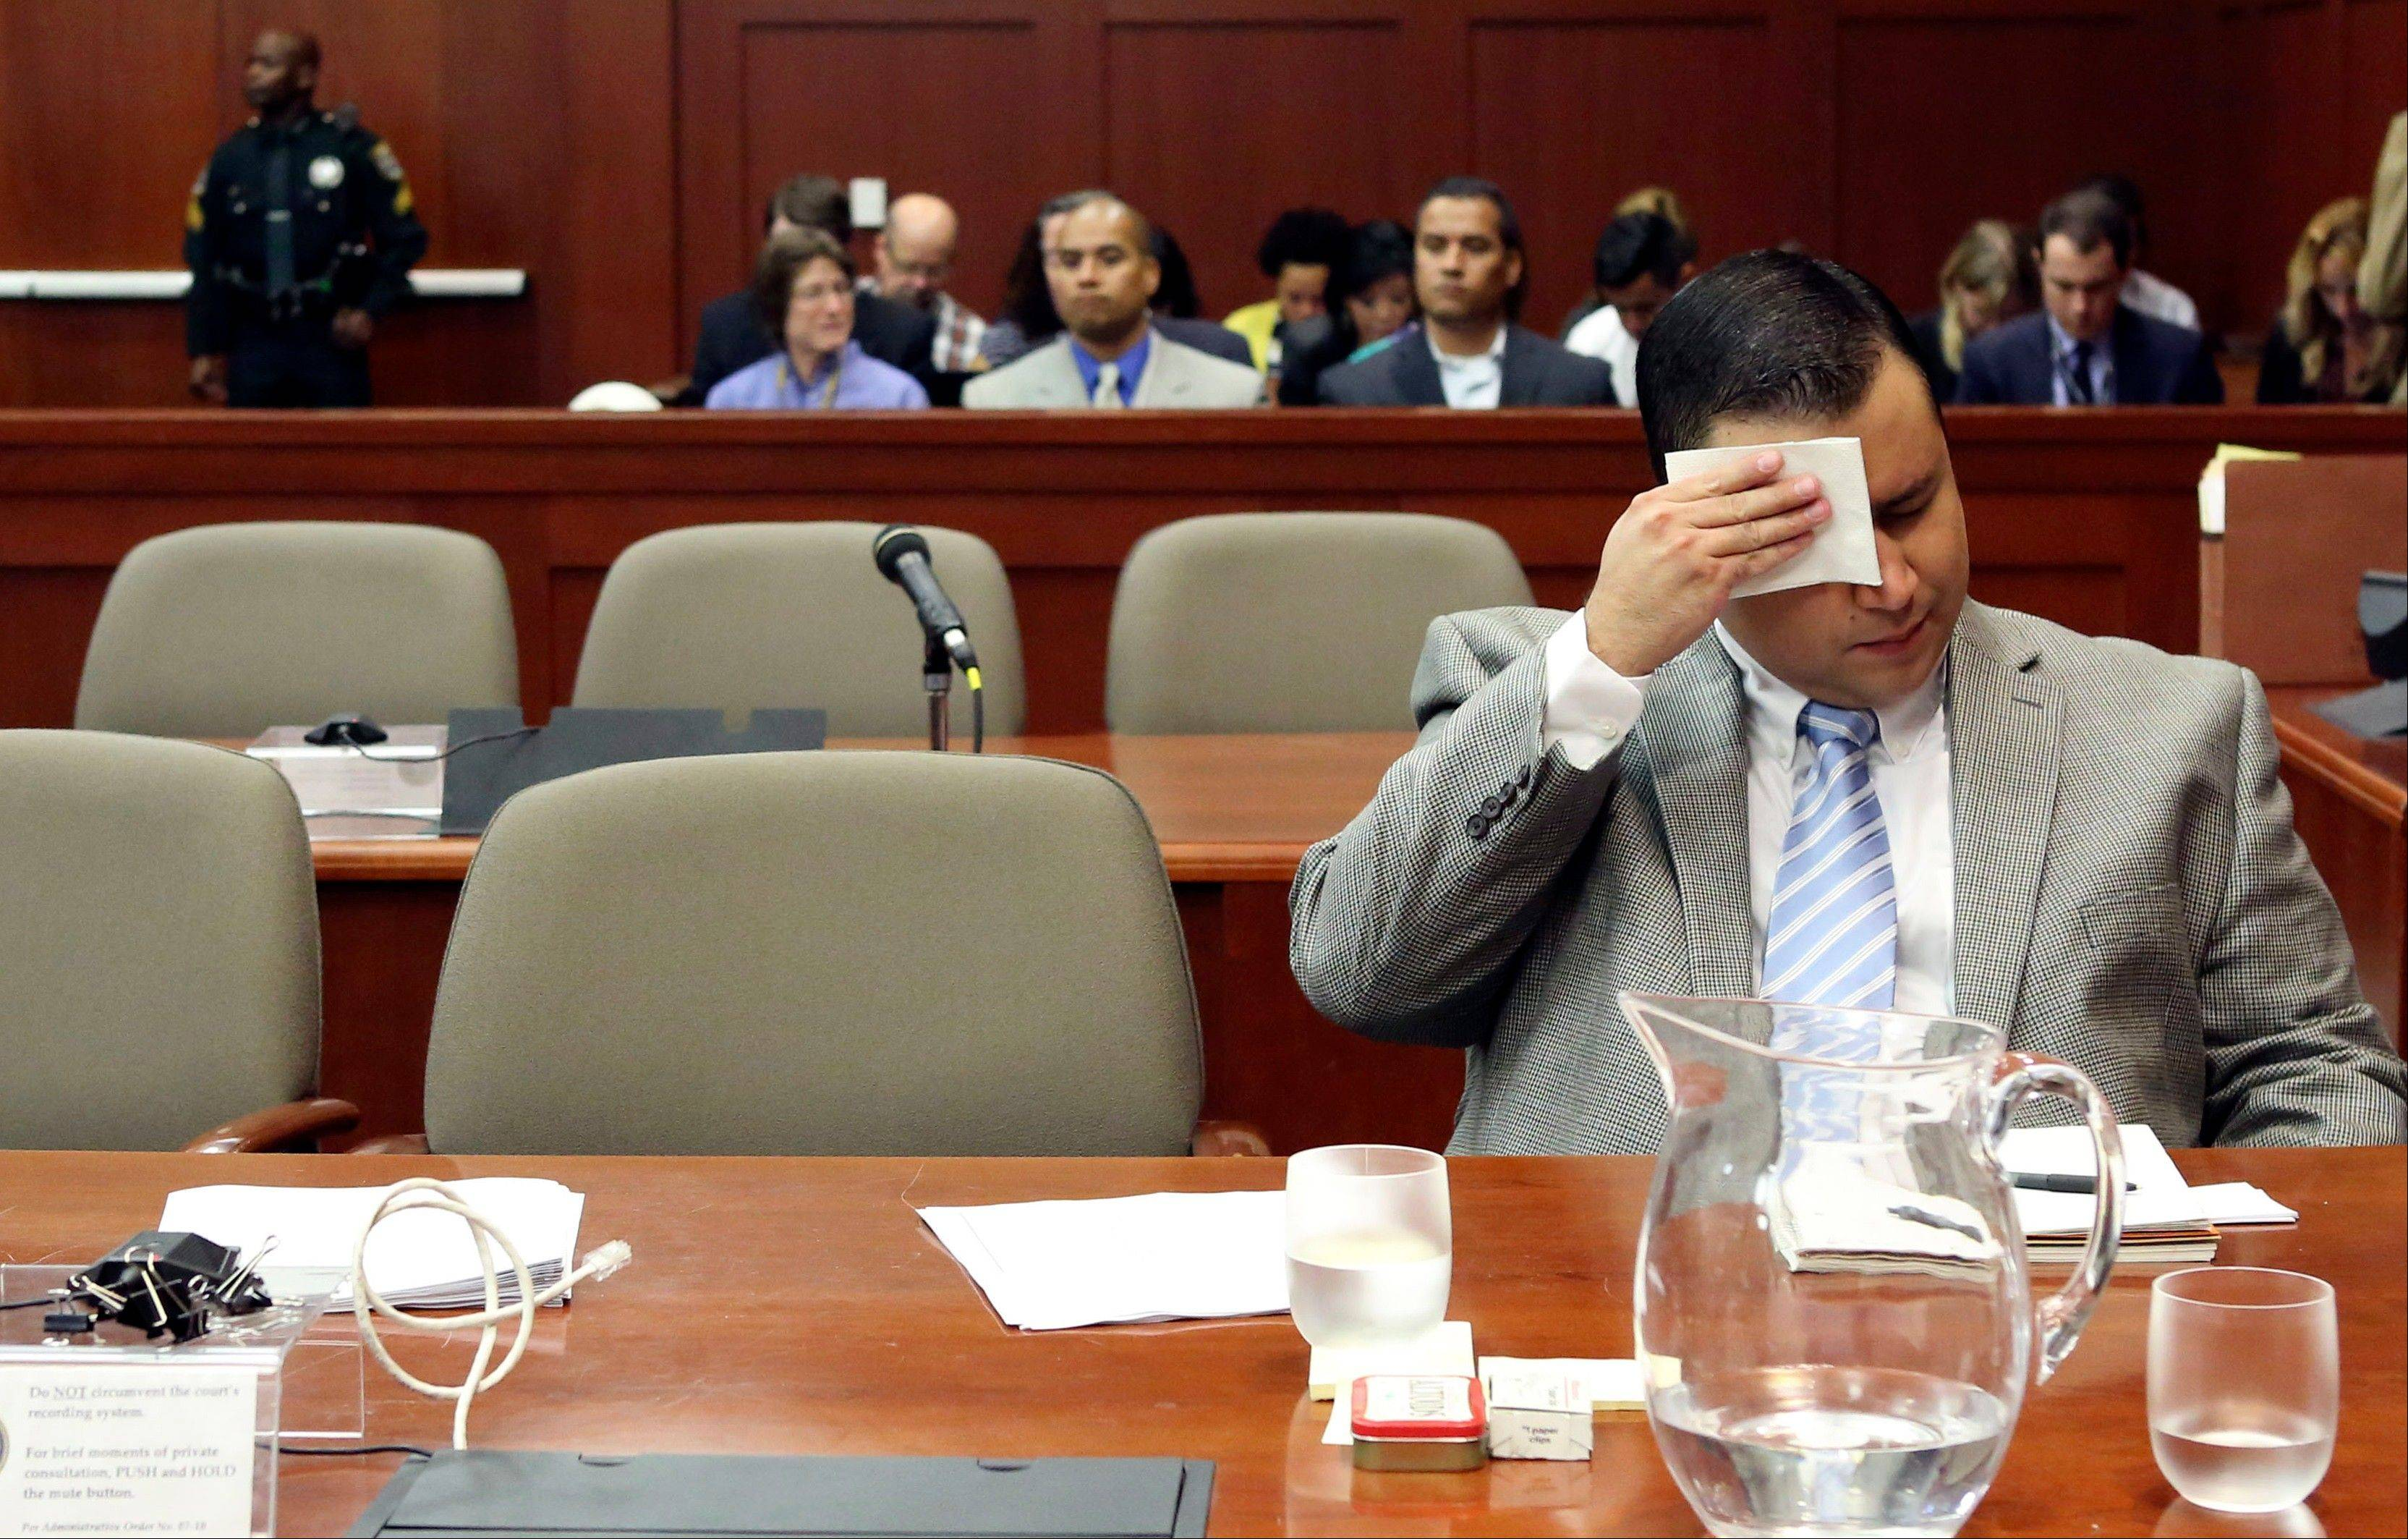 George Zimmerman wipes his brow before the start of court during his trial in Seminole circuit court in Sanford, Fla. Thursday, July 11, 2013. Zimmerman has been charged with second-degree murder for the 2012 shooting death of Trayvon Martin.